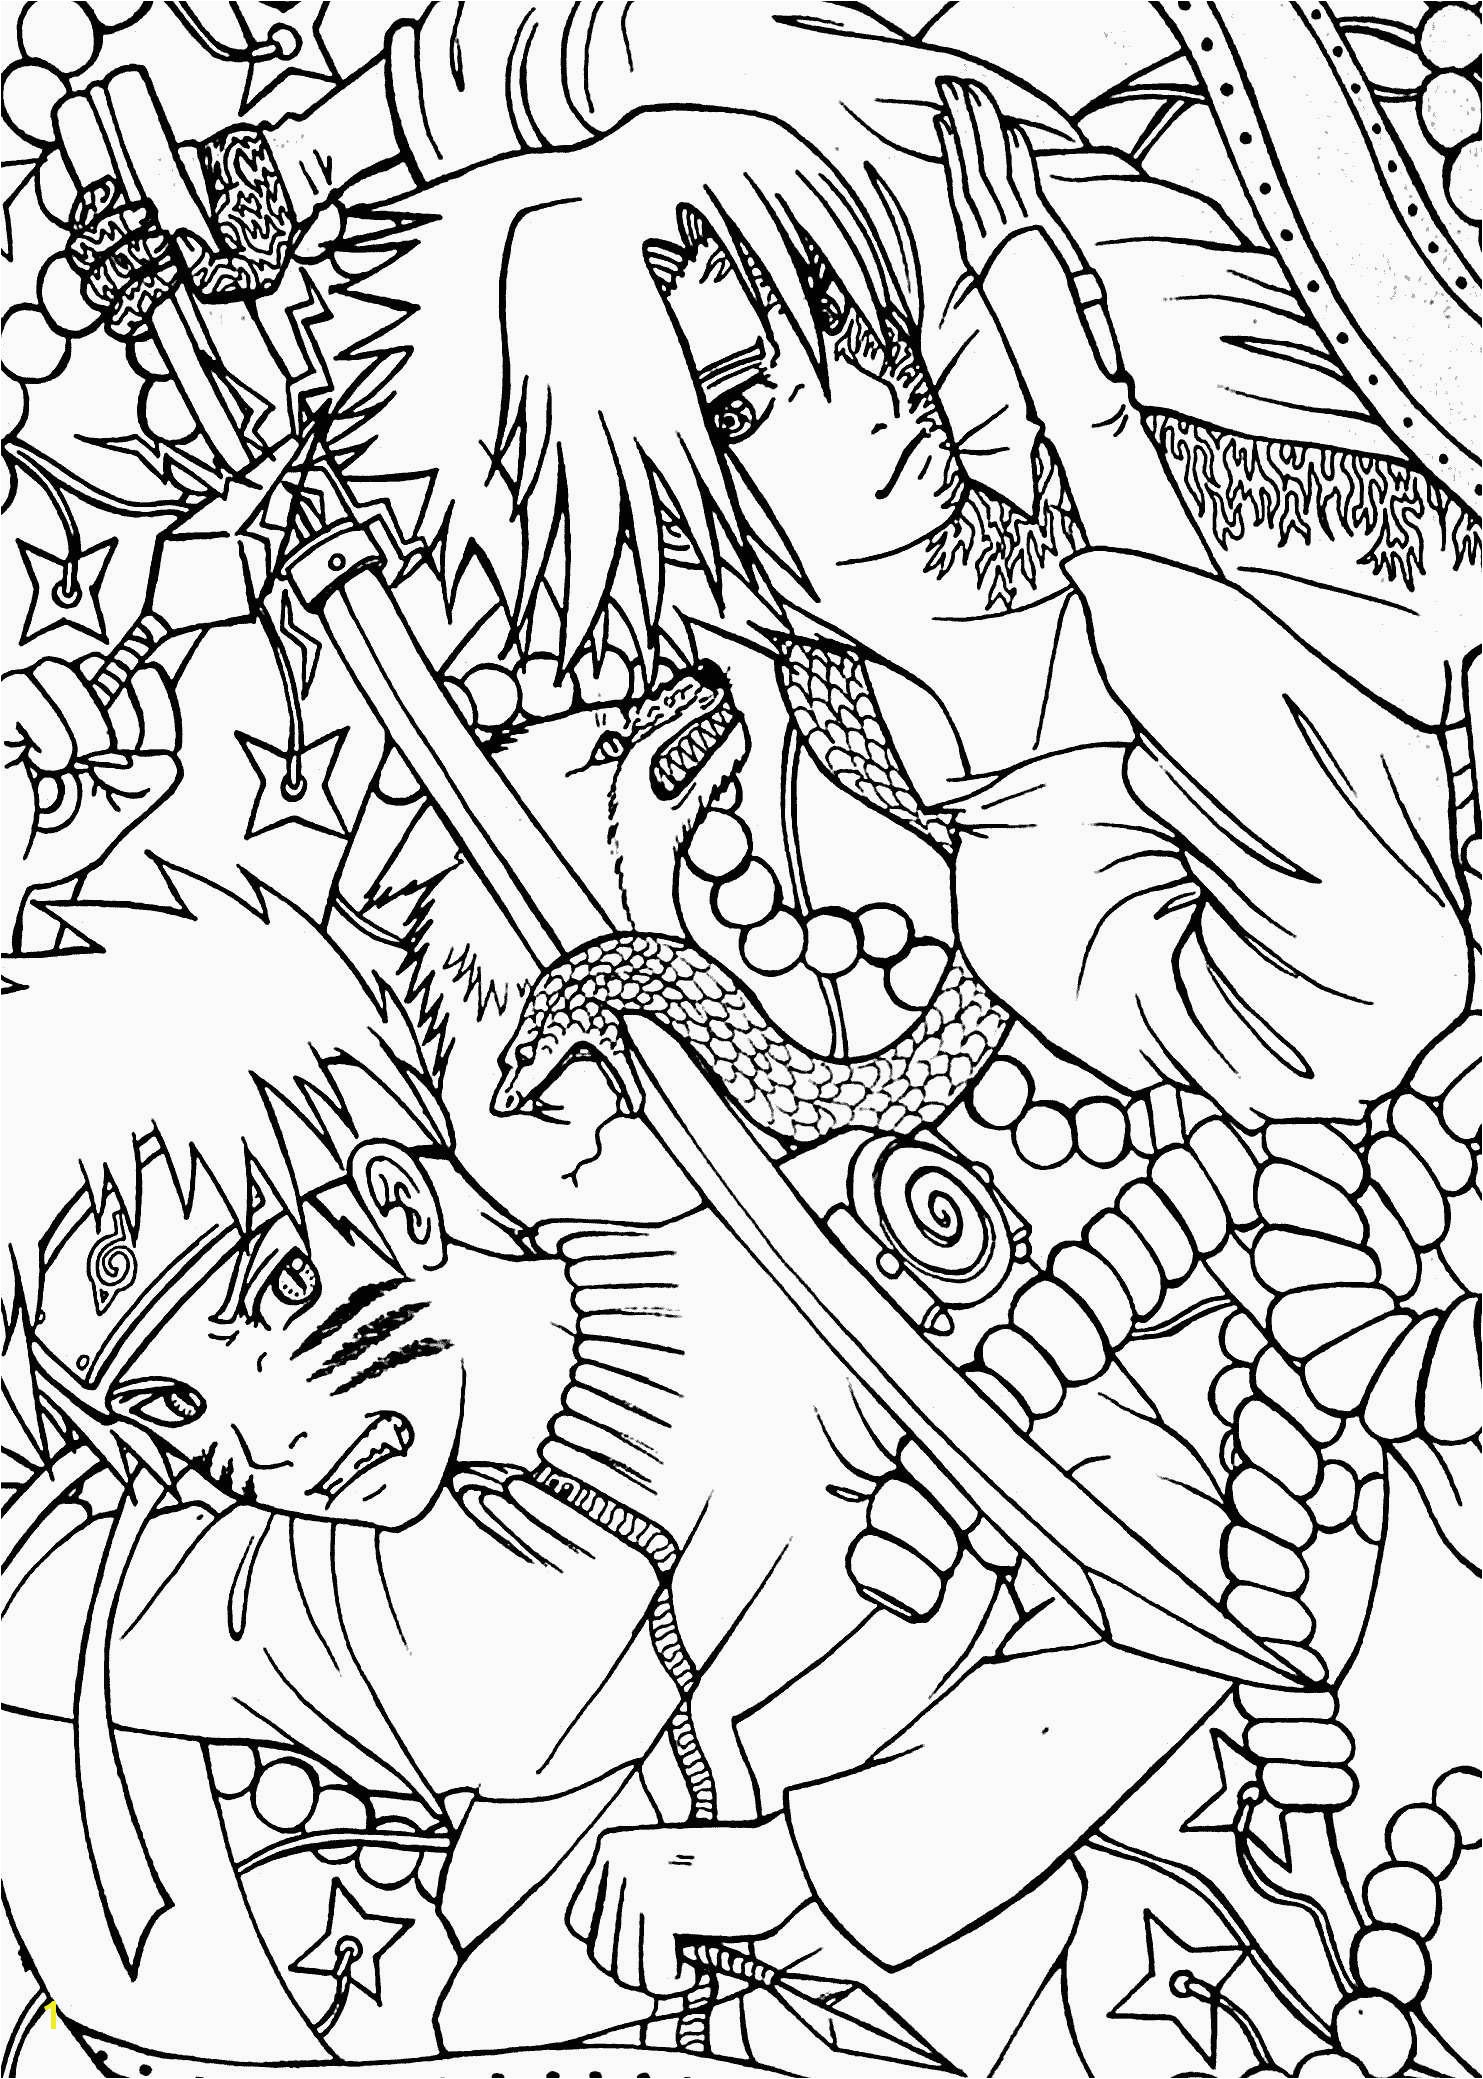 Witch Coloring Page Inspirational Crayola Pages 0d Coloring Page Elegant Anime Coloring Pages Printable